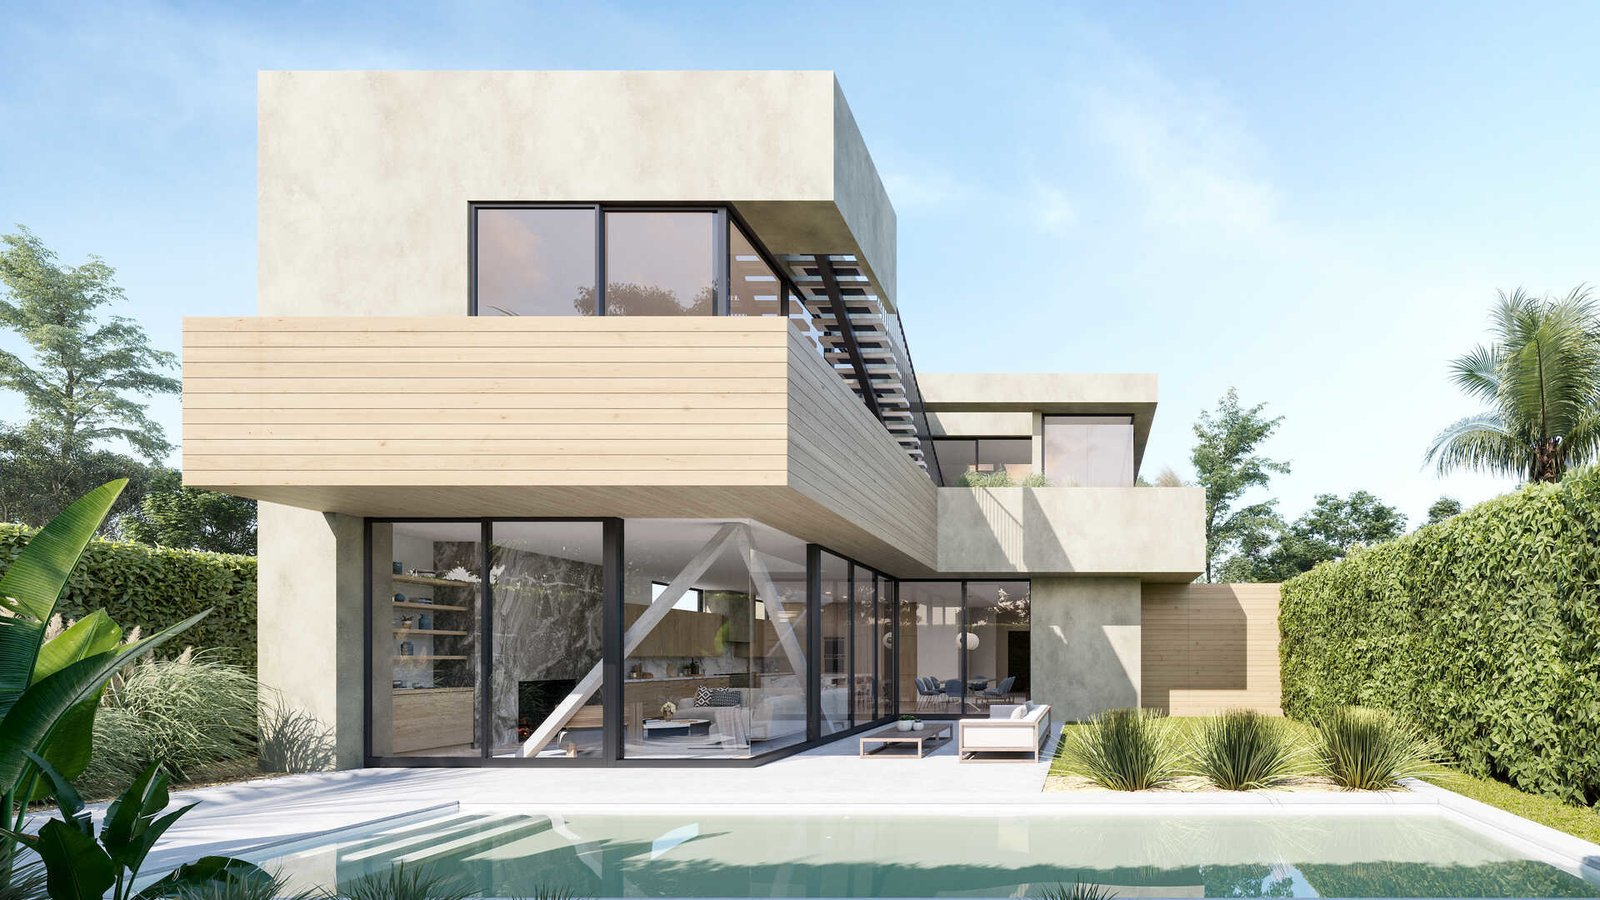 Outdoor, Concrete Patio, Porch, Deck, Large Patio, Porch, Deck, Back Yard, Grass, Large Pools, Tubs, Shower, Shrubs, and Swimming Pools, Tubs, Shower  A Newly-Built Modern Hilltop Home in Mar Vista